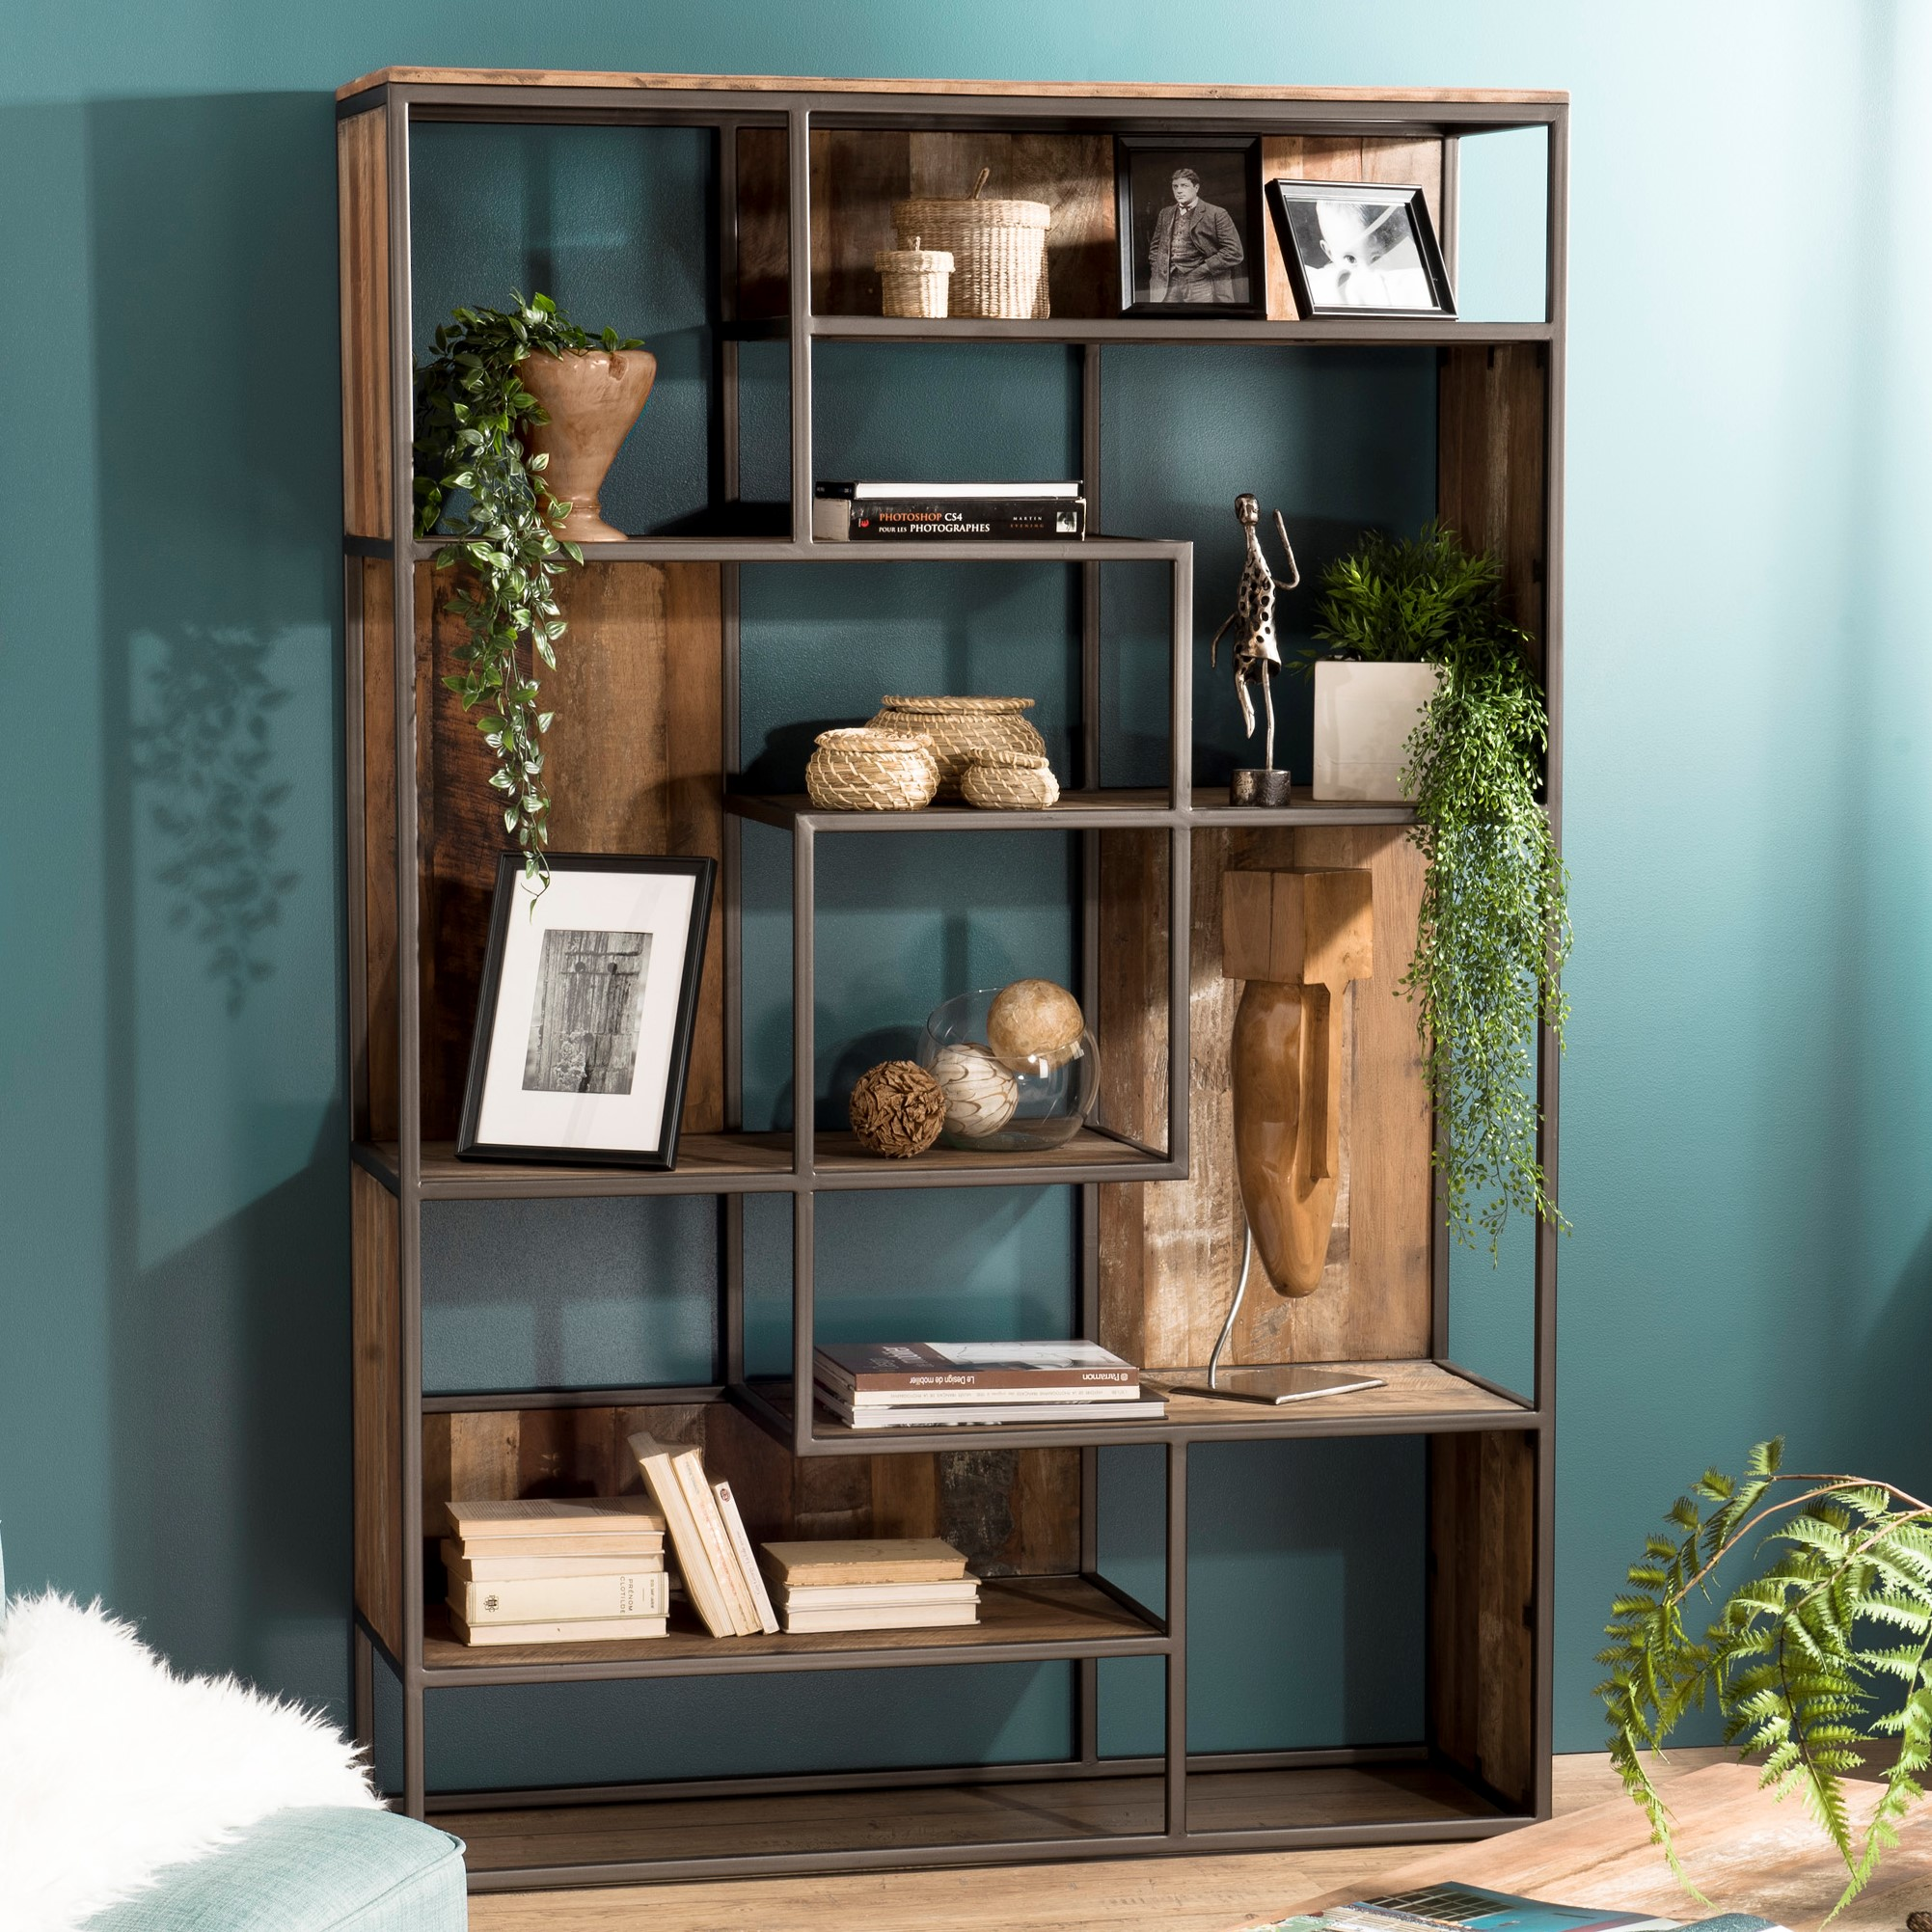 bibliotheque etagere teck recycle swing